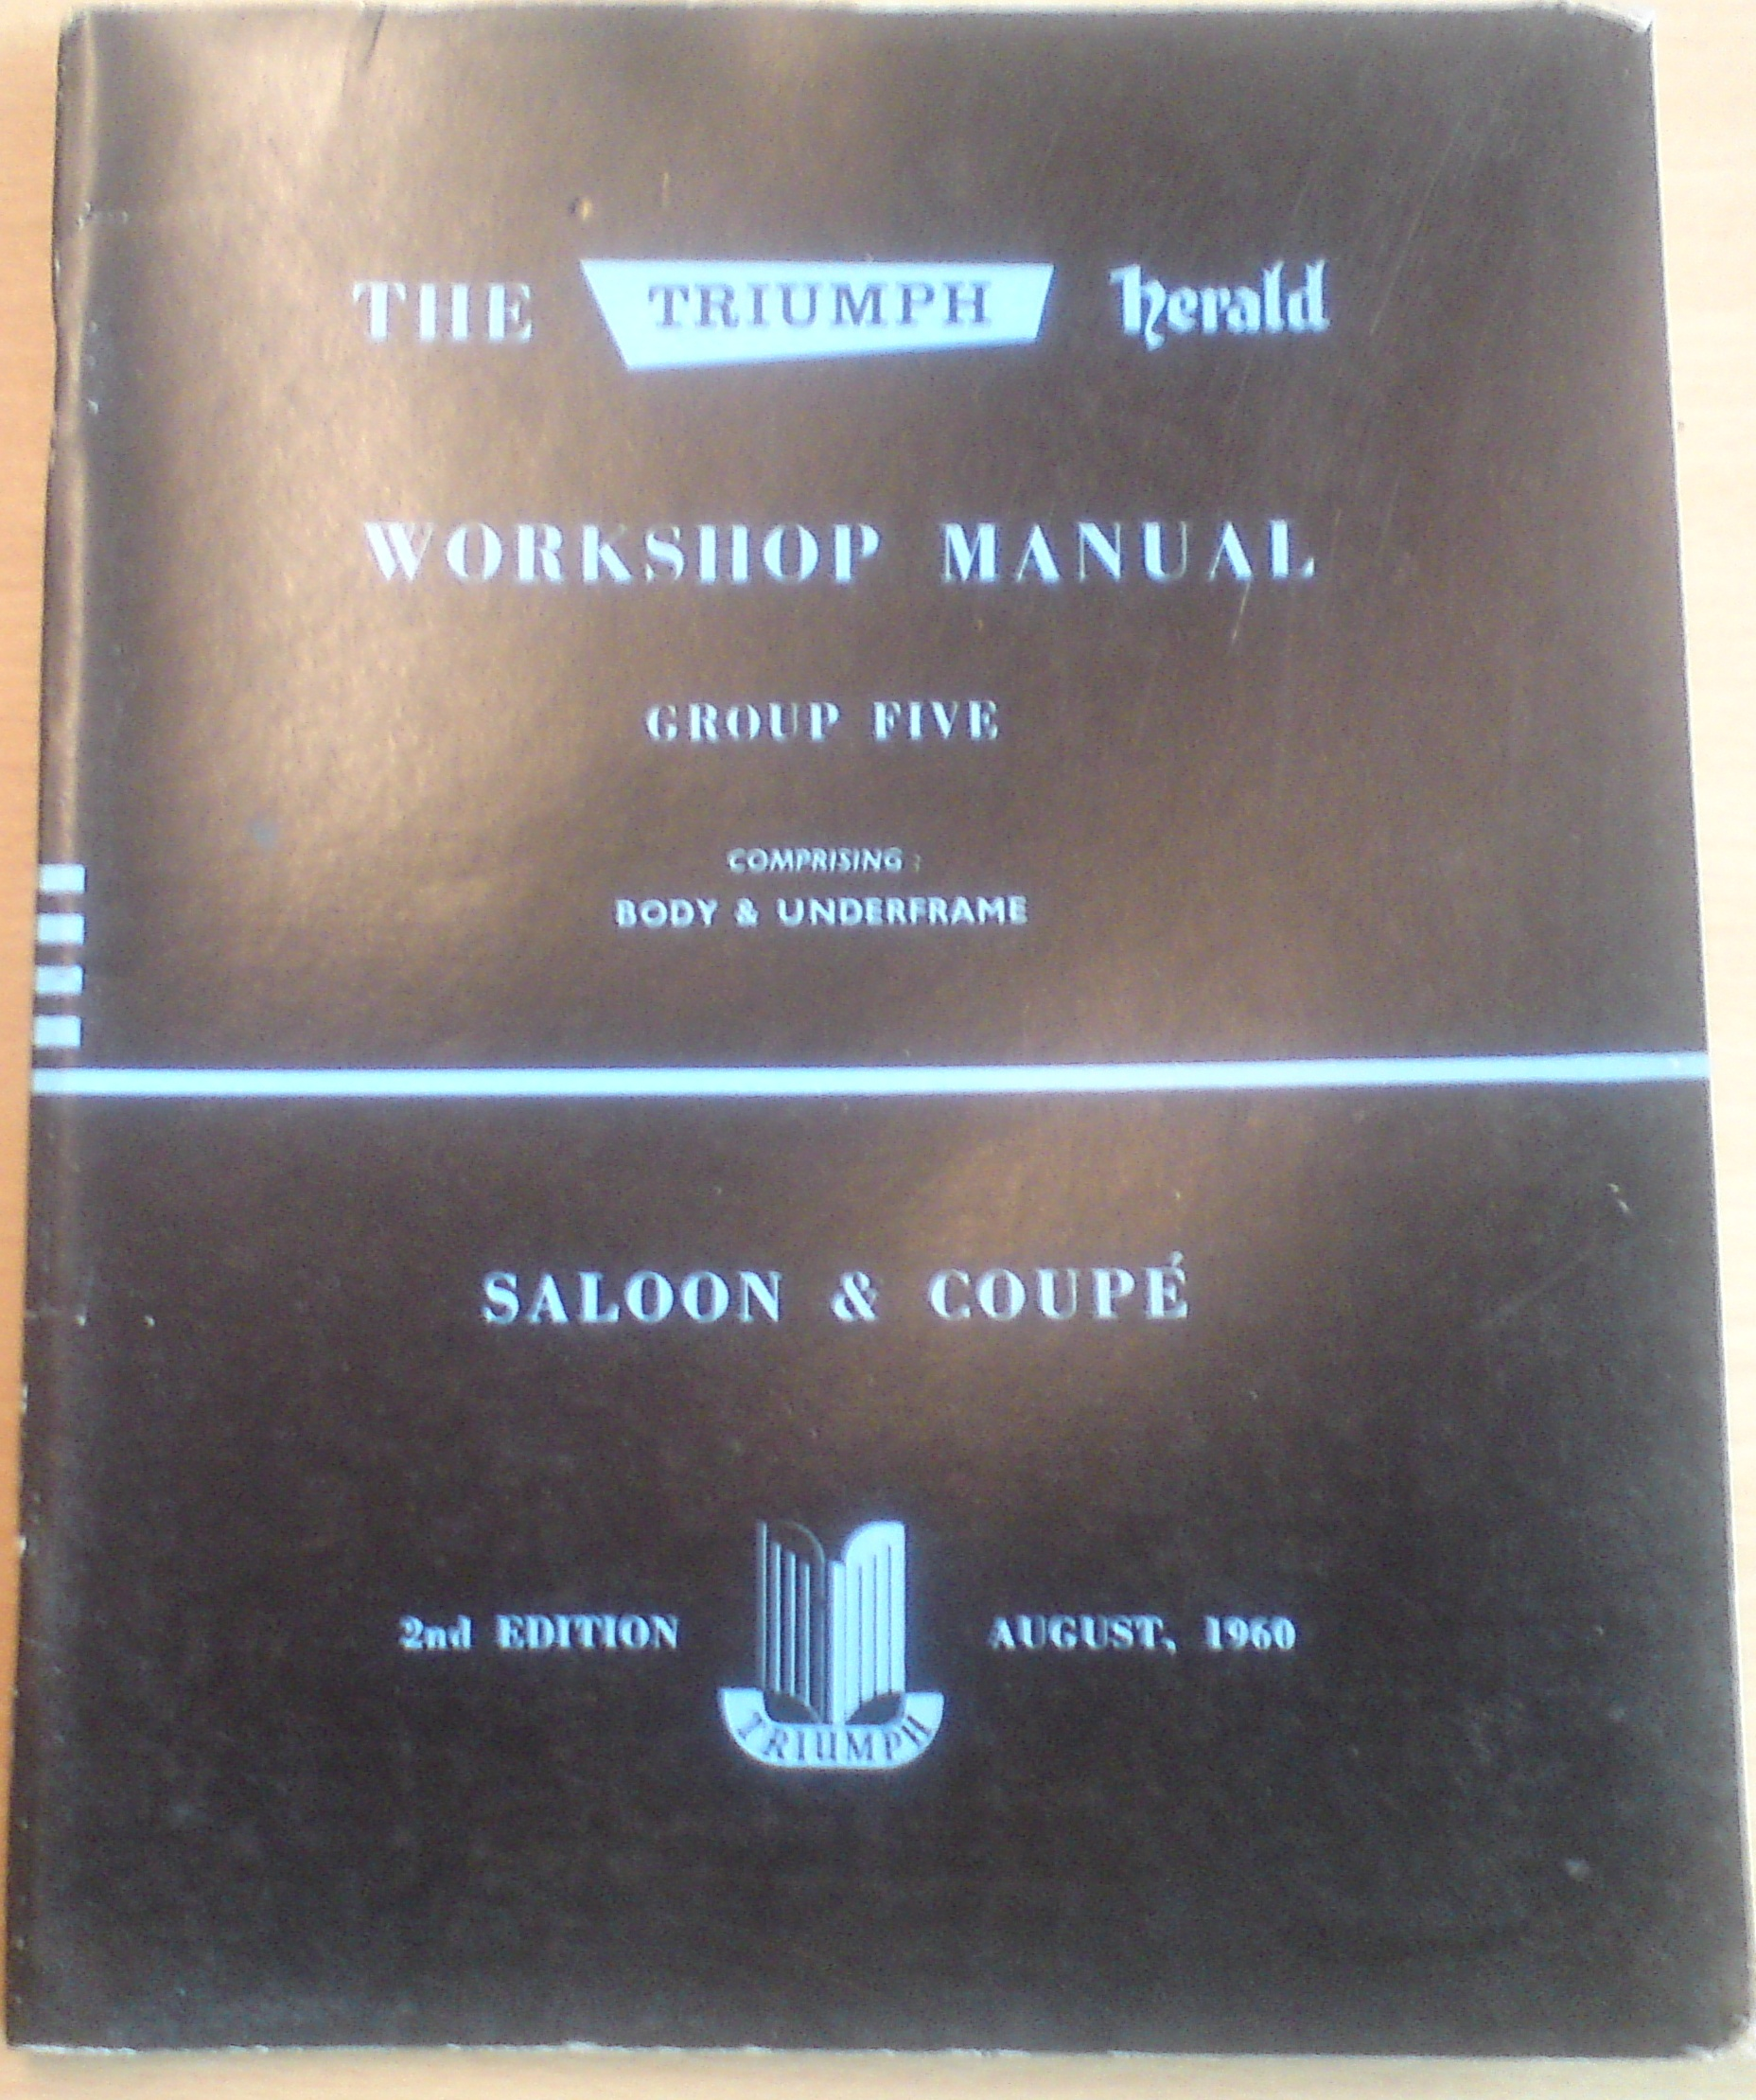 Workshop Manual (Body & Underframe) Herald Saloon & Coupe